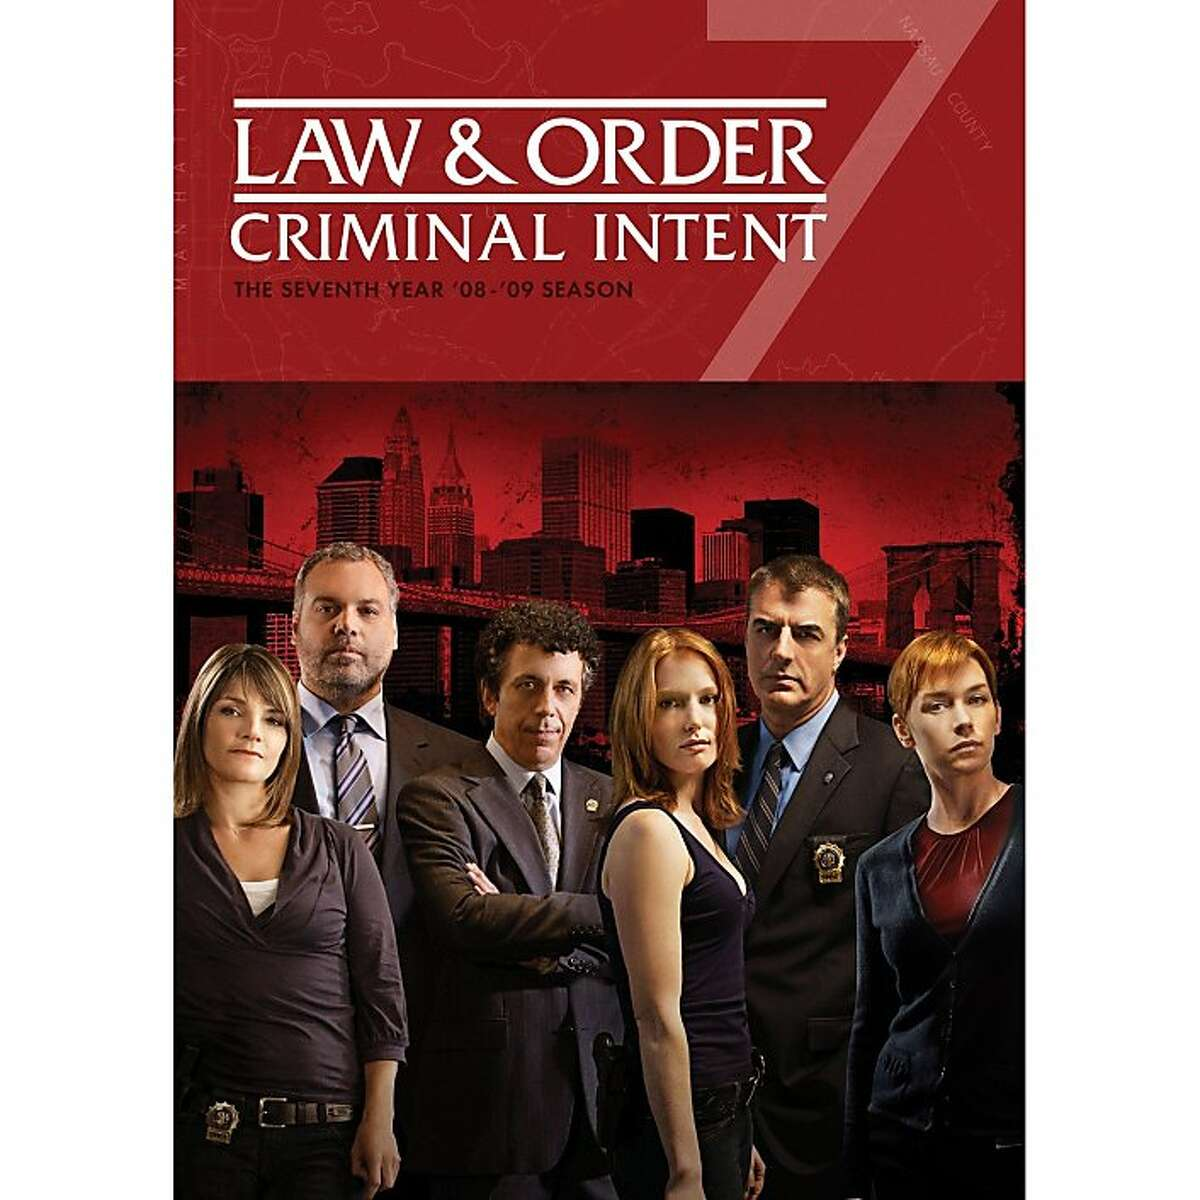 DVD cover: Law & Order: Criminal Intent -- The Seventh Year